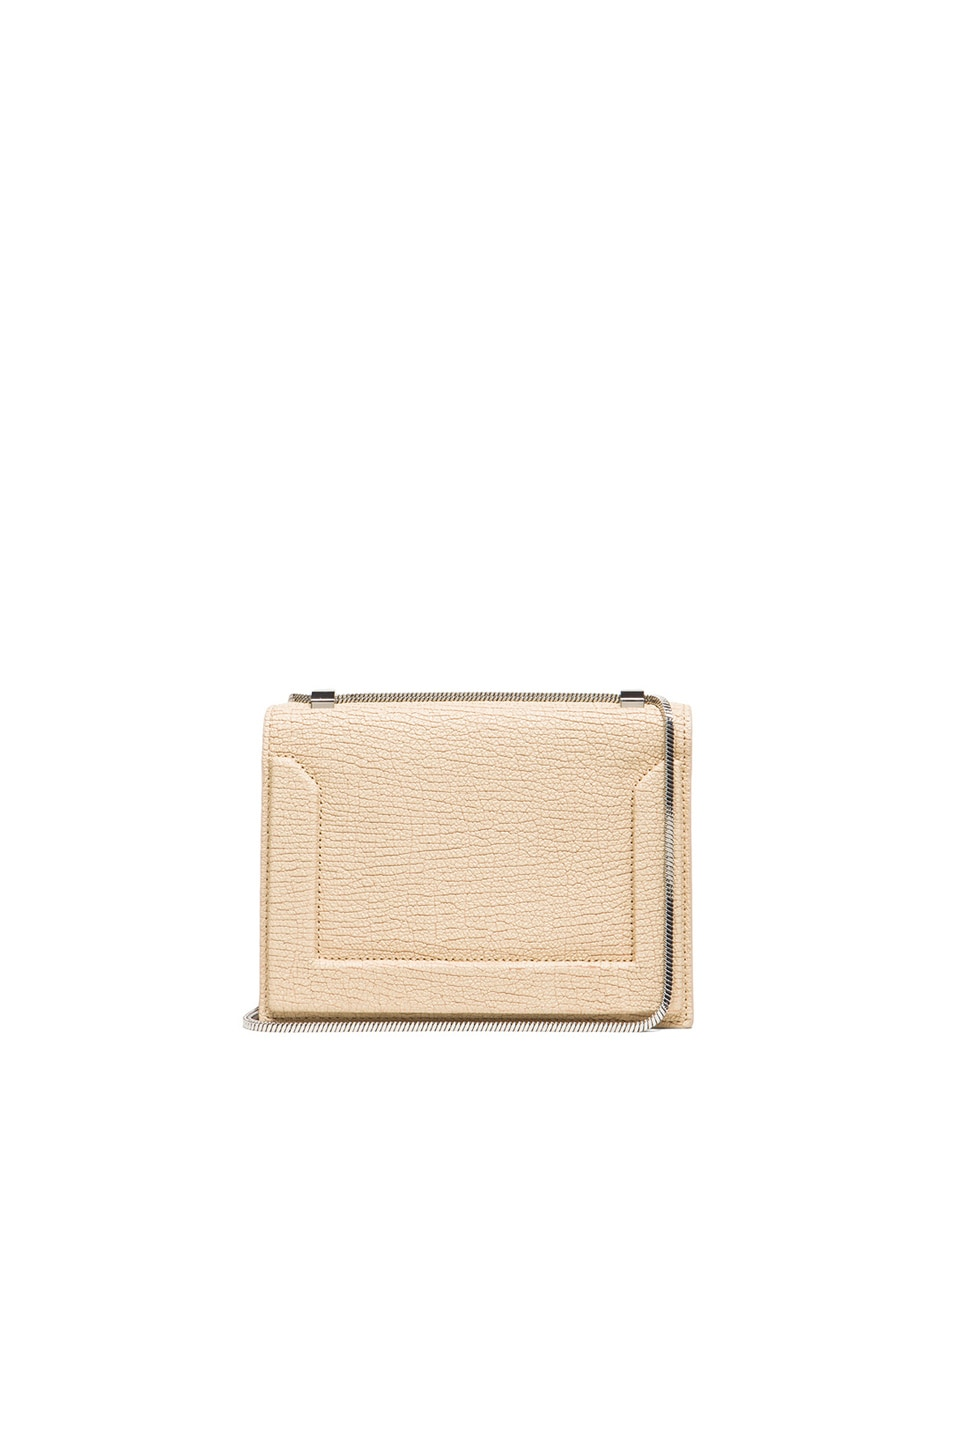 0b0ea767ca7 Image 1 of 3.1 phillip lim Mini Soleil Chain Shoulder Bag in Nougat   Nickel